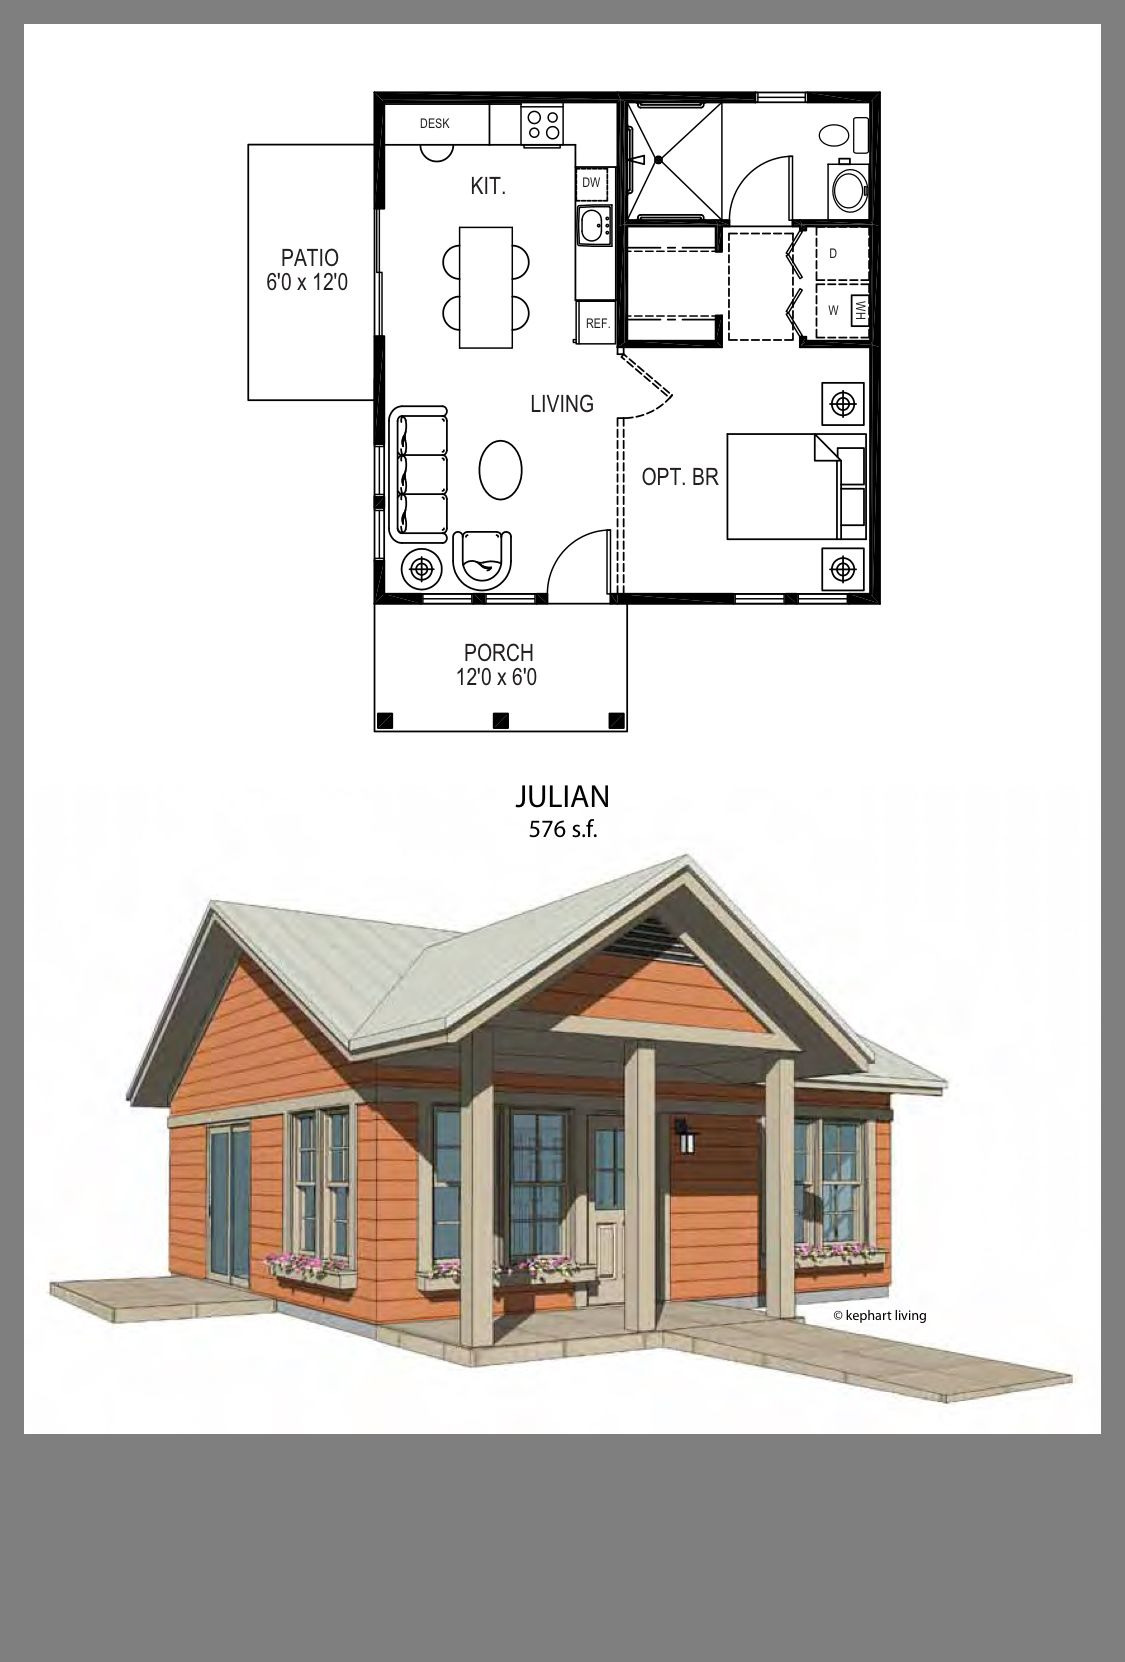 Floor Plans Small Houses Awesome Julian Small but Efficient